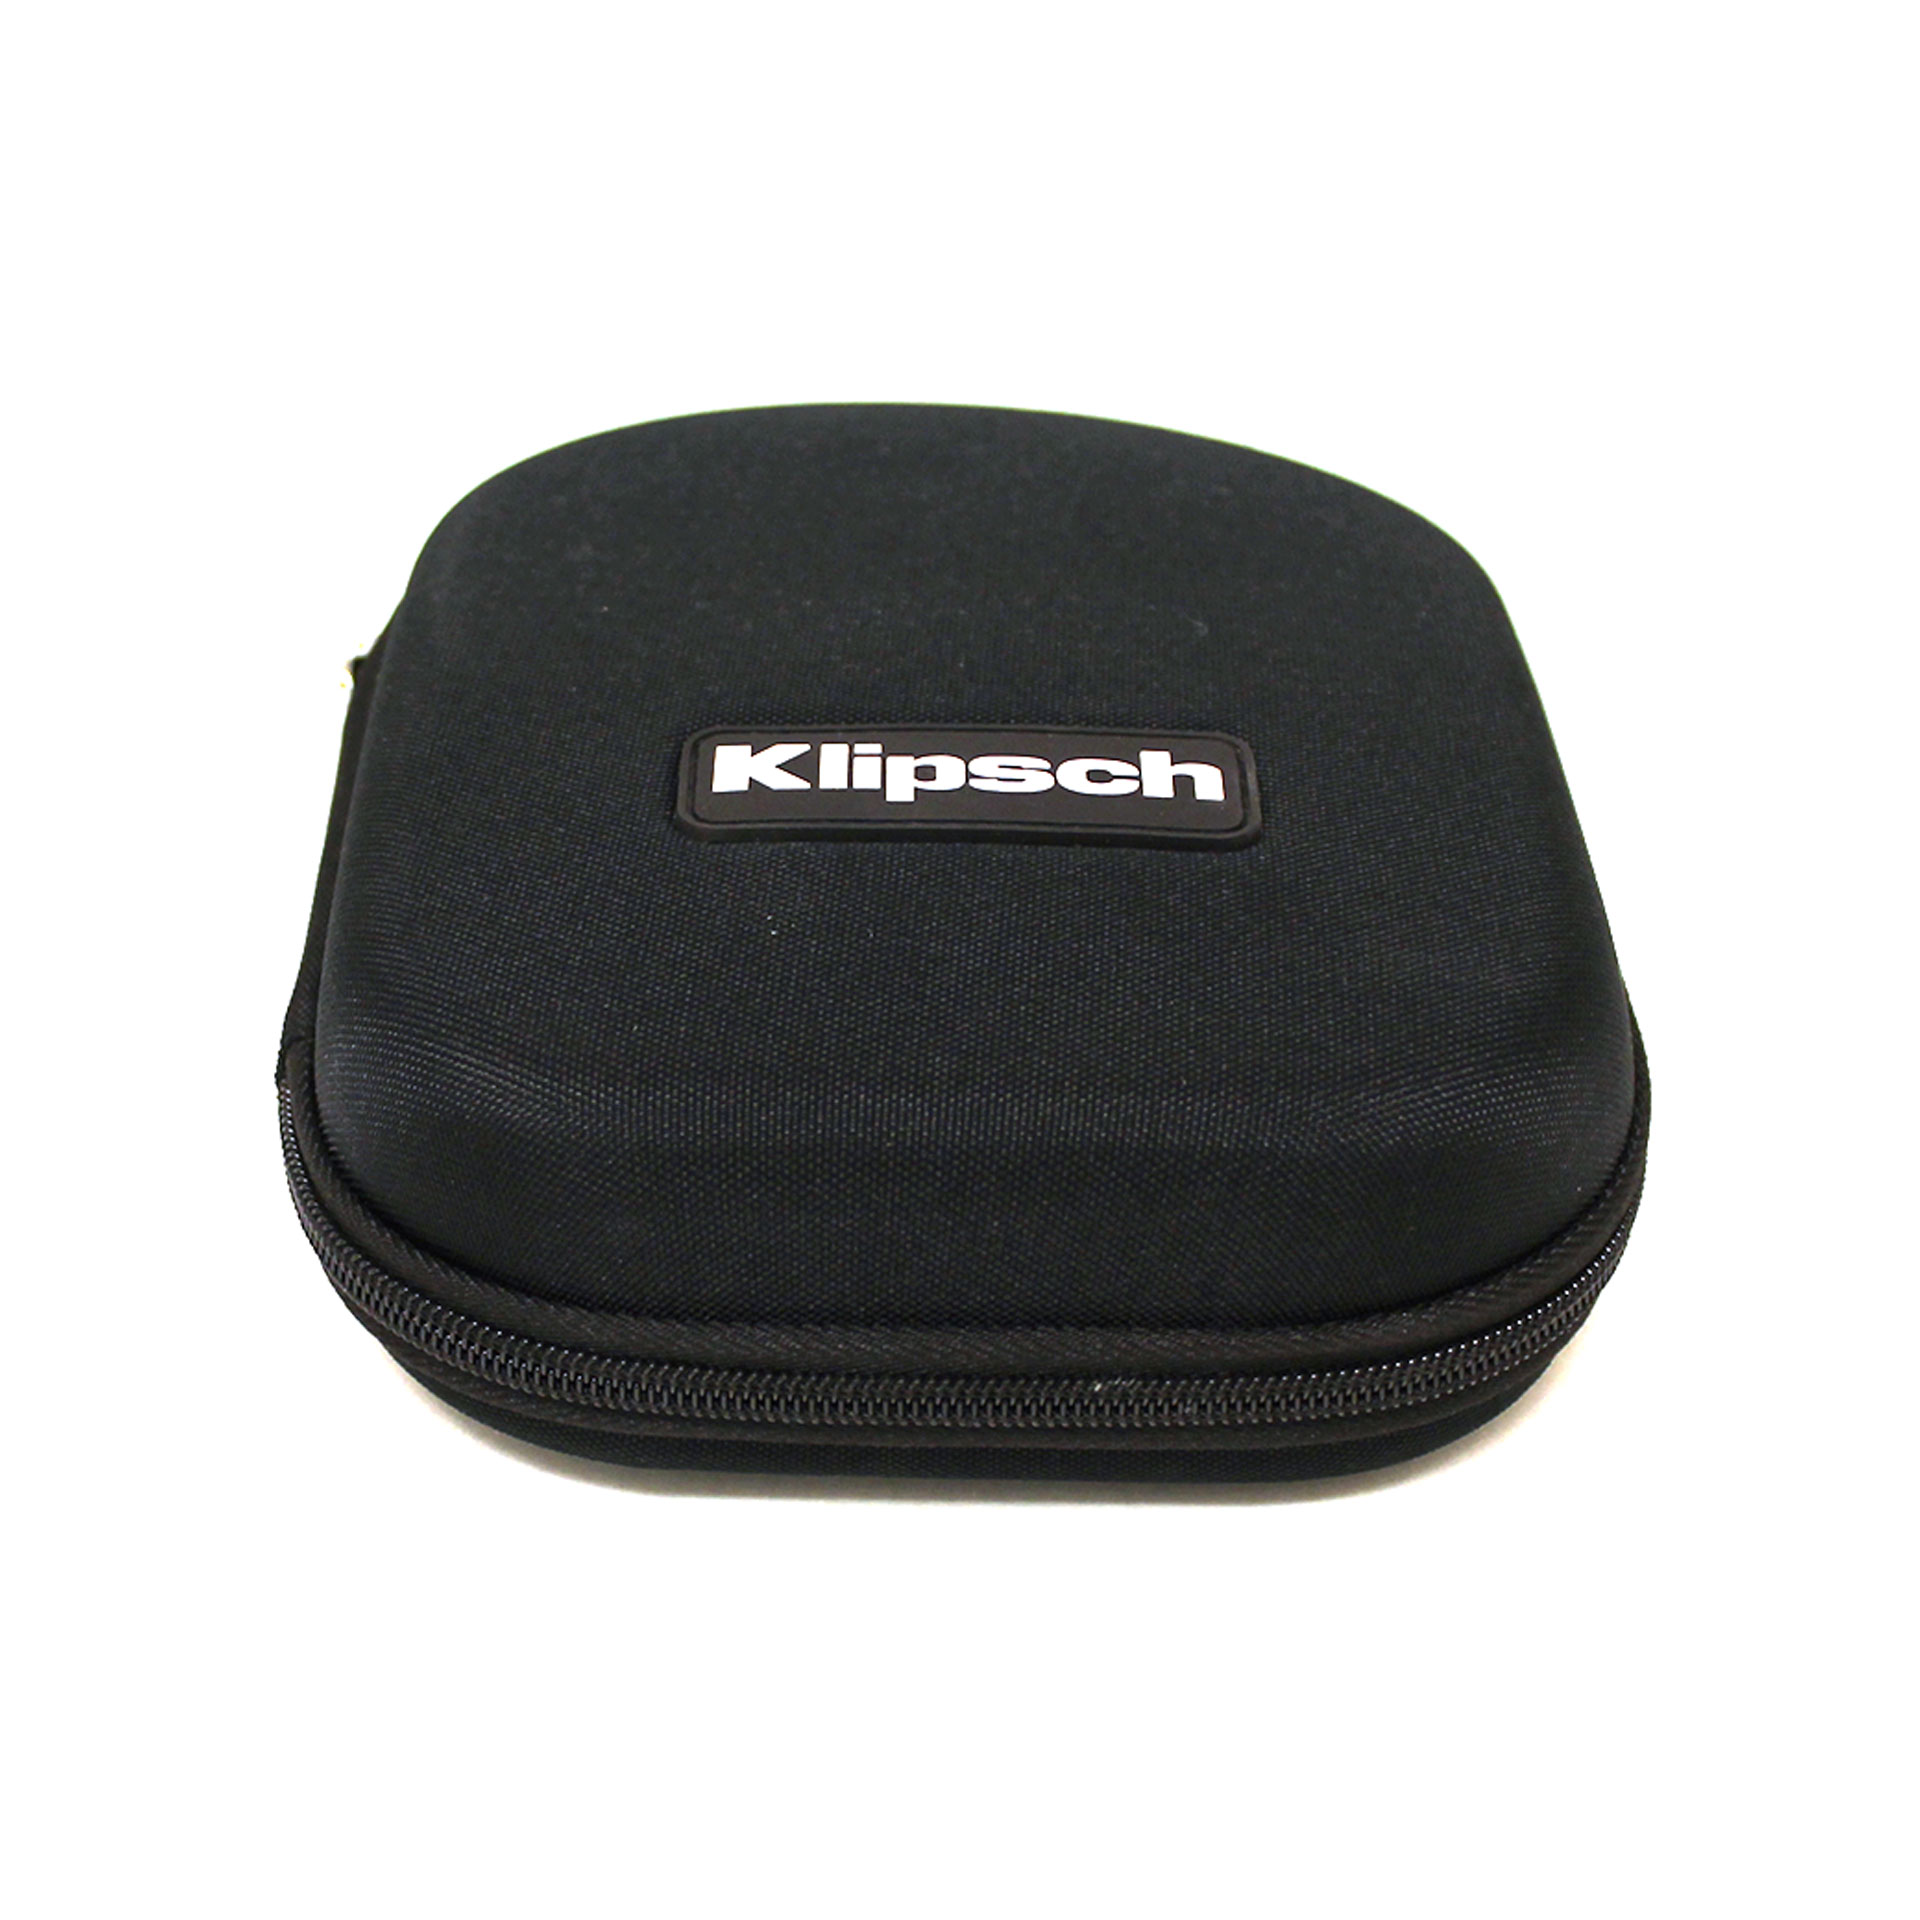 Case For Klipsch IMAGE ONE Premium On-Ear Headphones